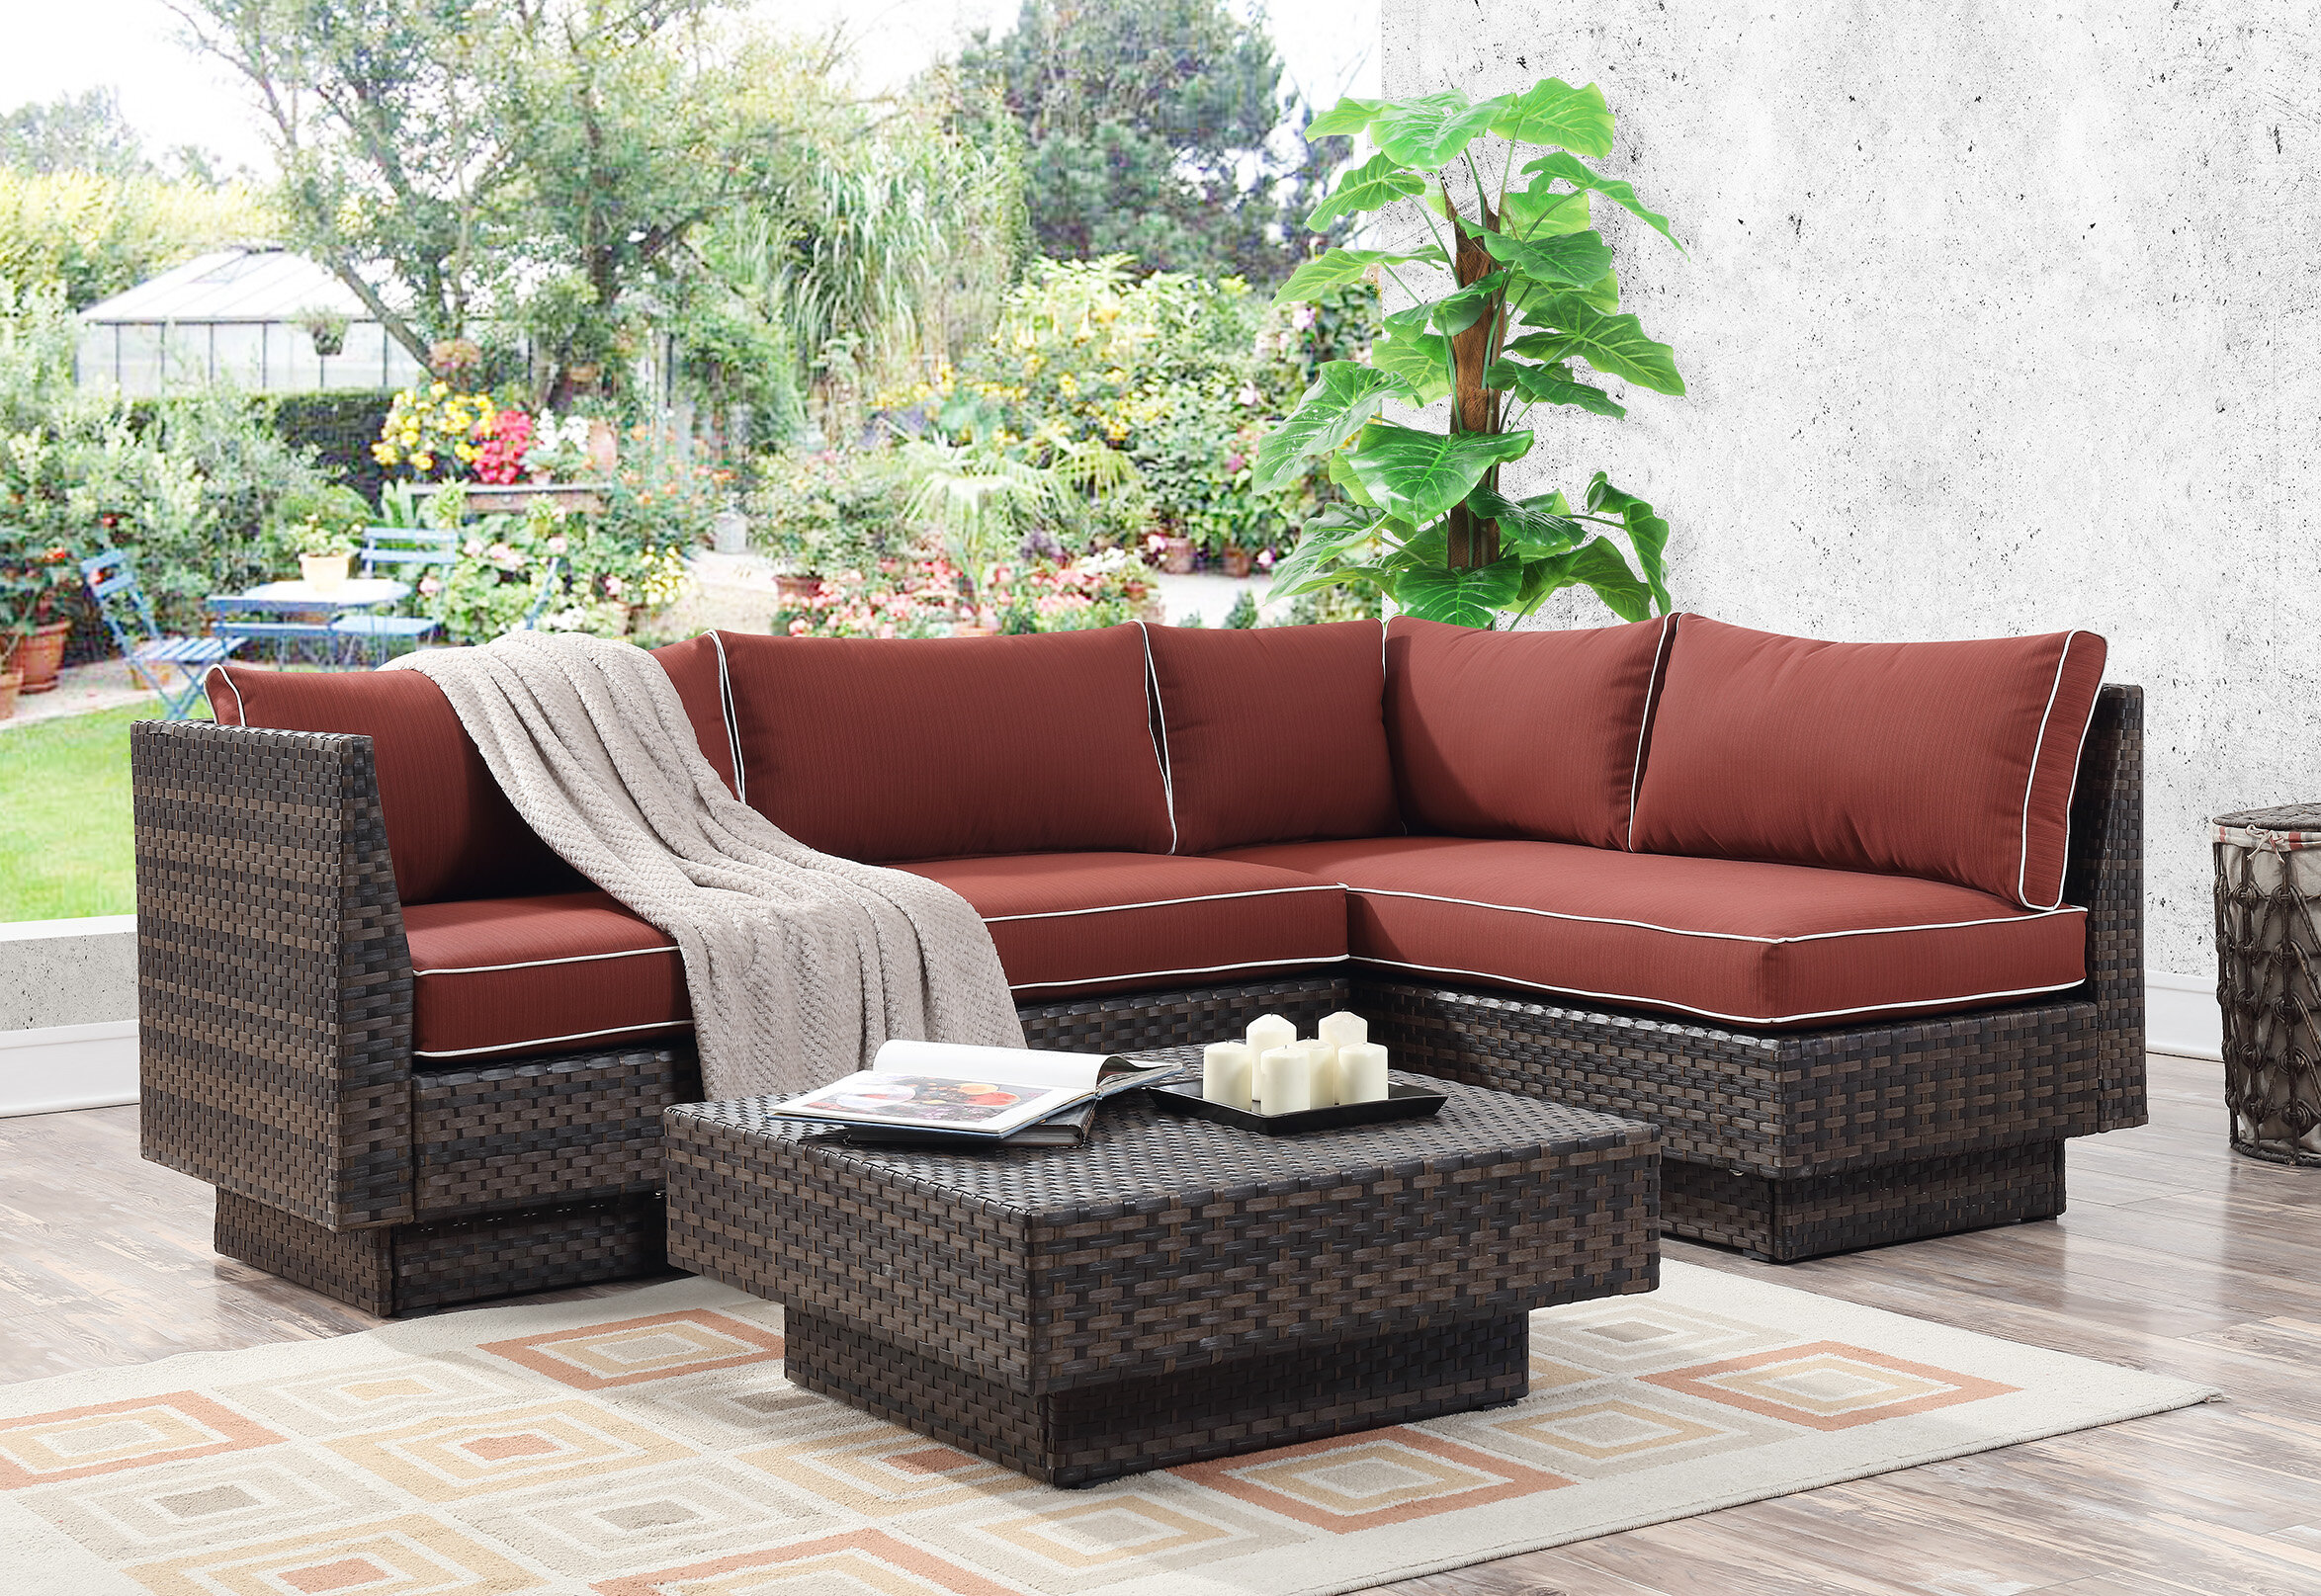 Mulford Outdoor 3 Piece Rattan Sectional Seating Group with Cushions